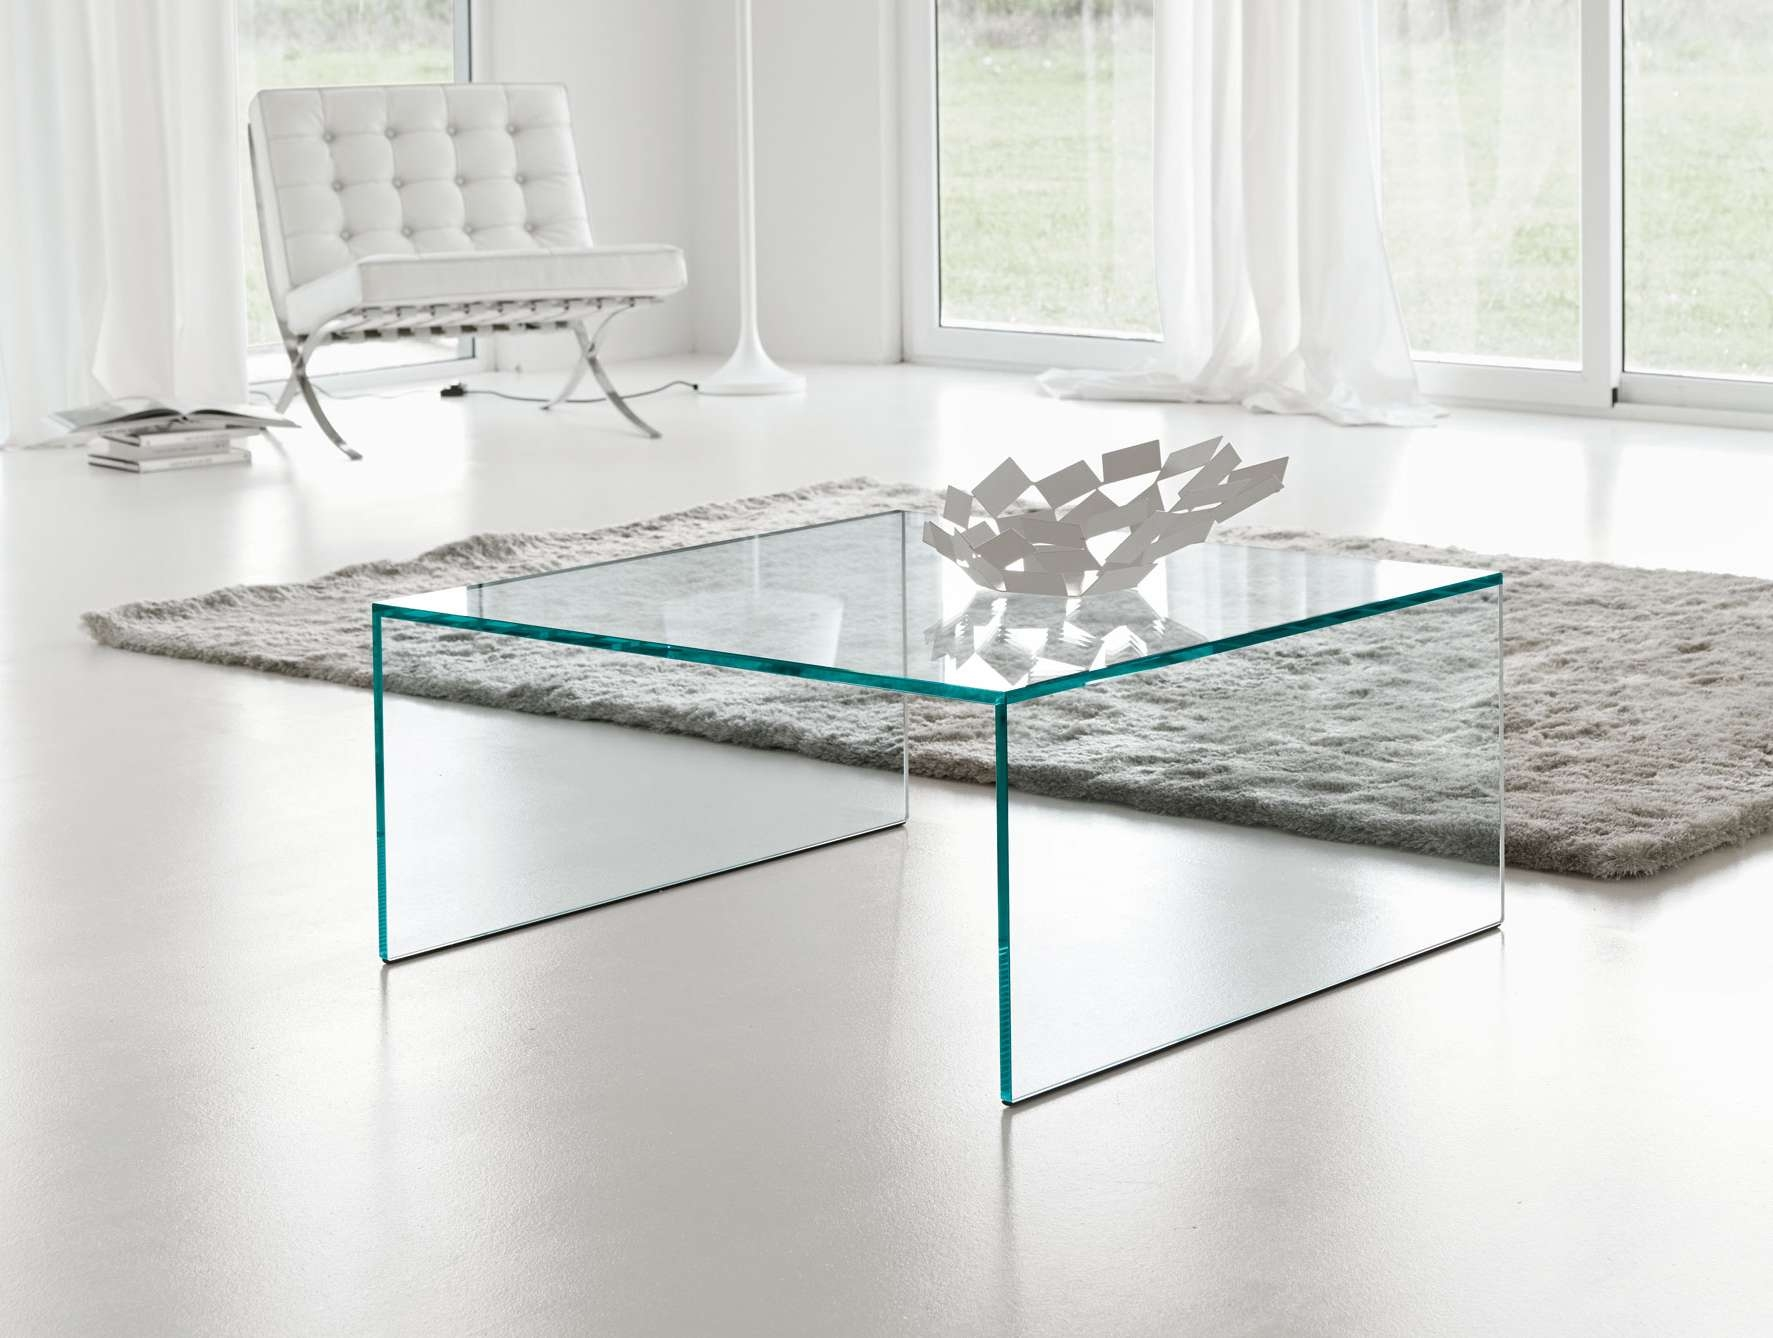 Nella Vetrina Tonelli Eden Modern Italian Square Coffee Table Intended For Favorite Square Glass Coffee Tables (Gallery 11 of 20)